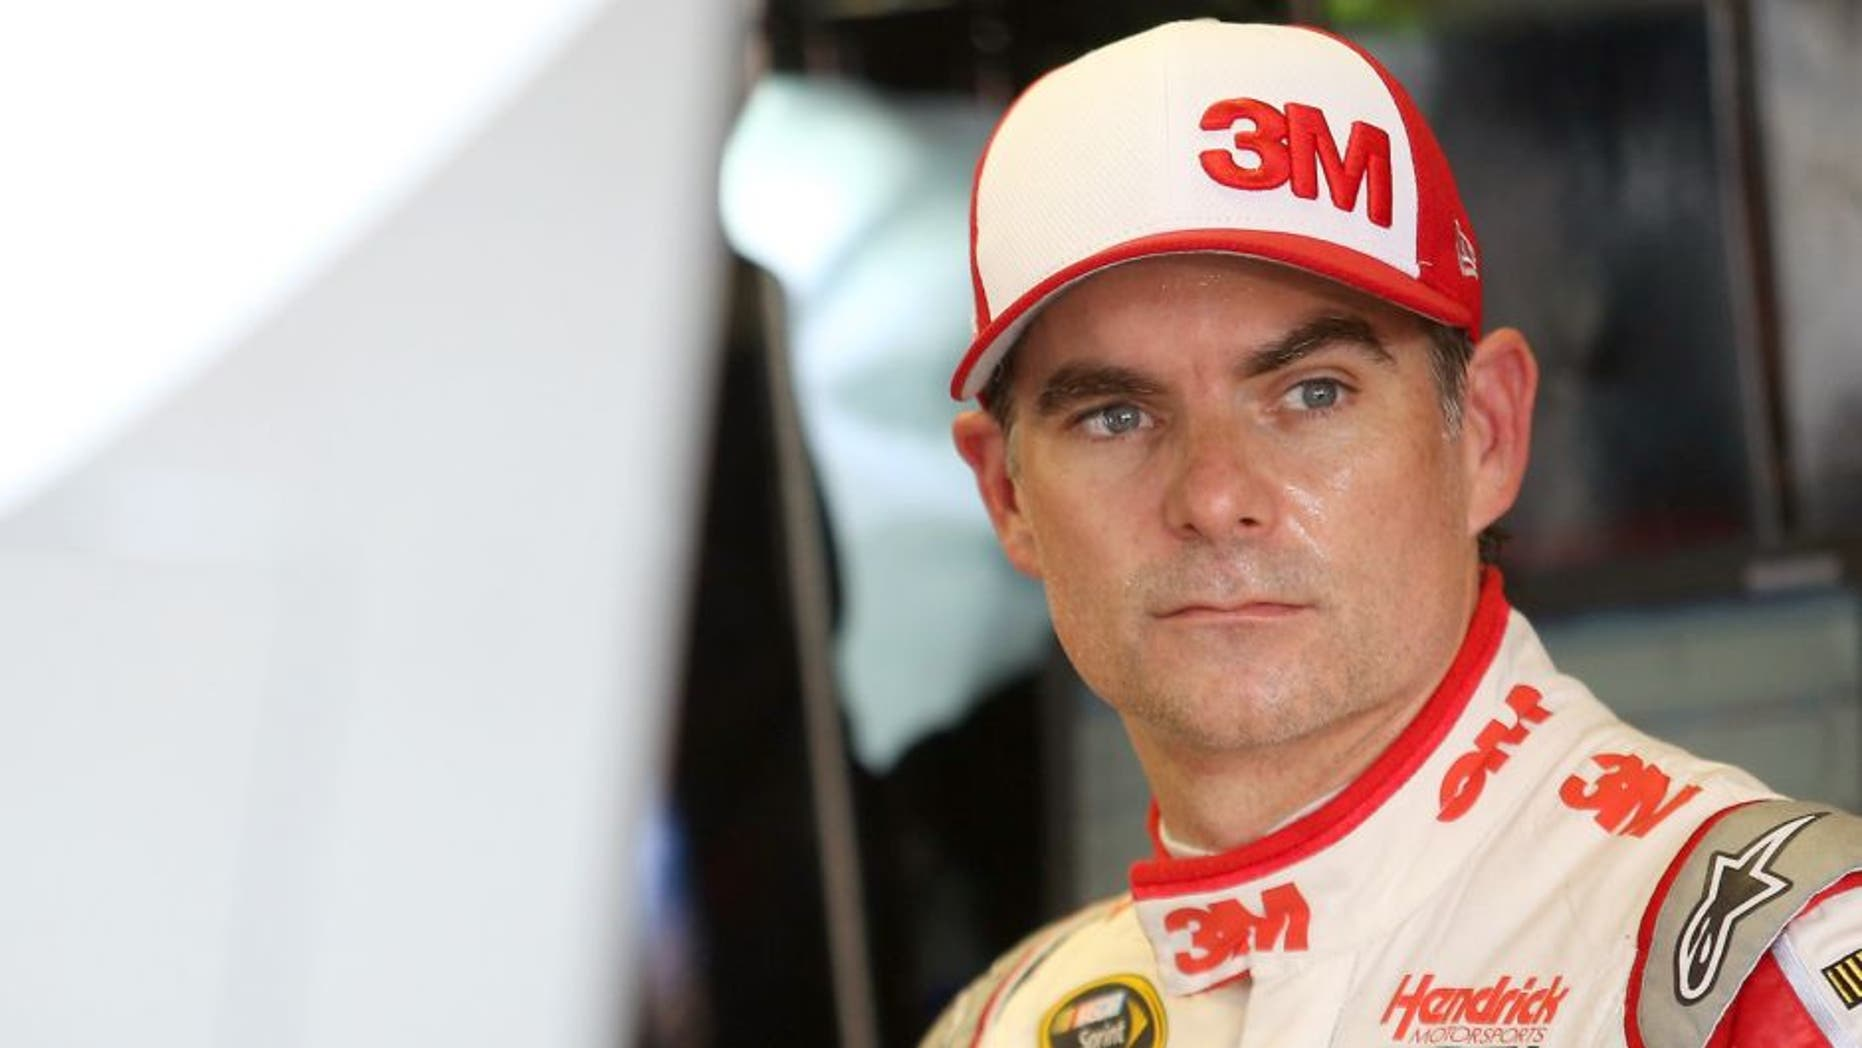 Jeff Gordon, driver of the #24 3M Chevrolet, stands in the garage area during practice for the NASCAR Sprint Cup Series Bojangles' Southern 500 at Darlington Raceway on September 4, 2015 in Darlington, South Carolina. (Photo by Matt Hazlett/Getty Images)